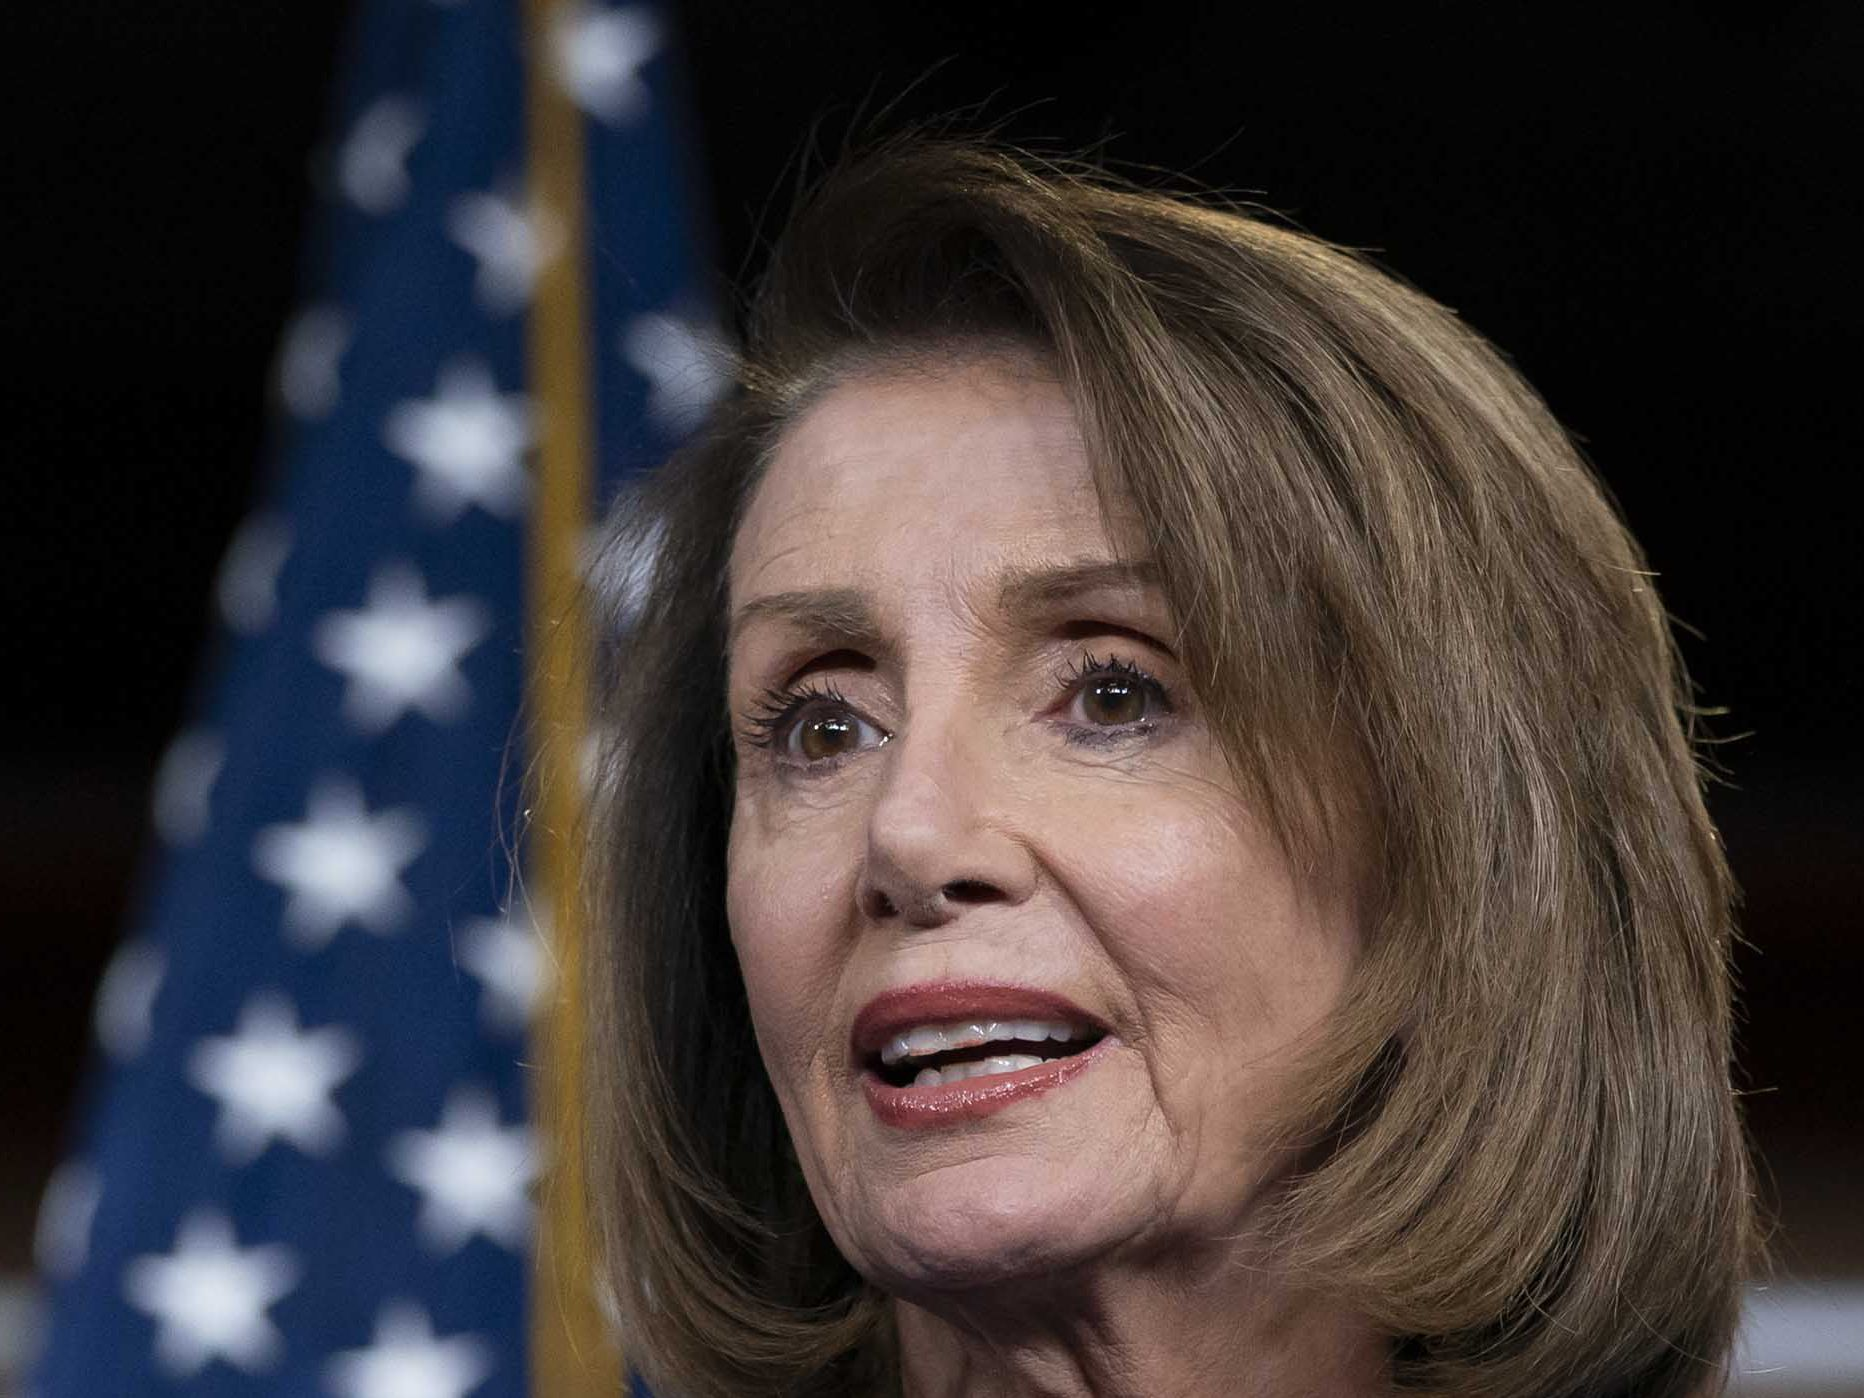 House Democrats' measure blocking Trump emergency declaration coming Friday